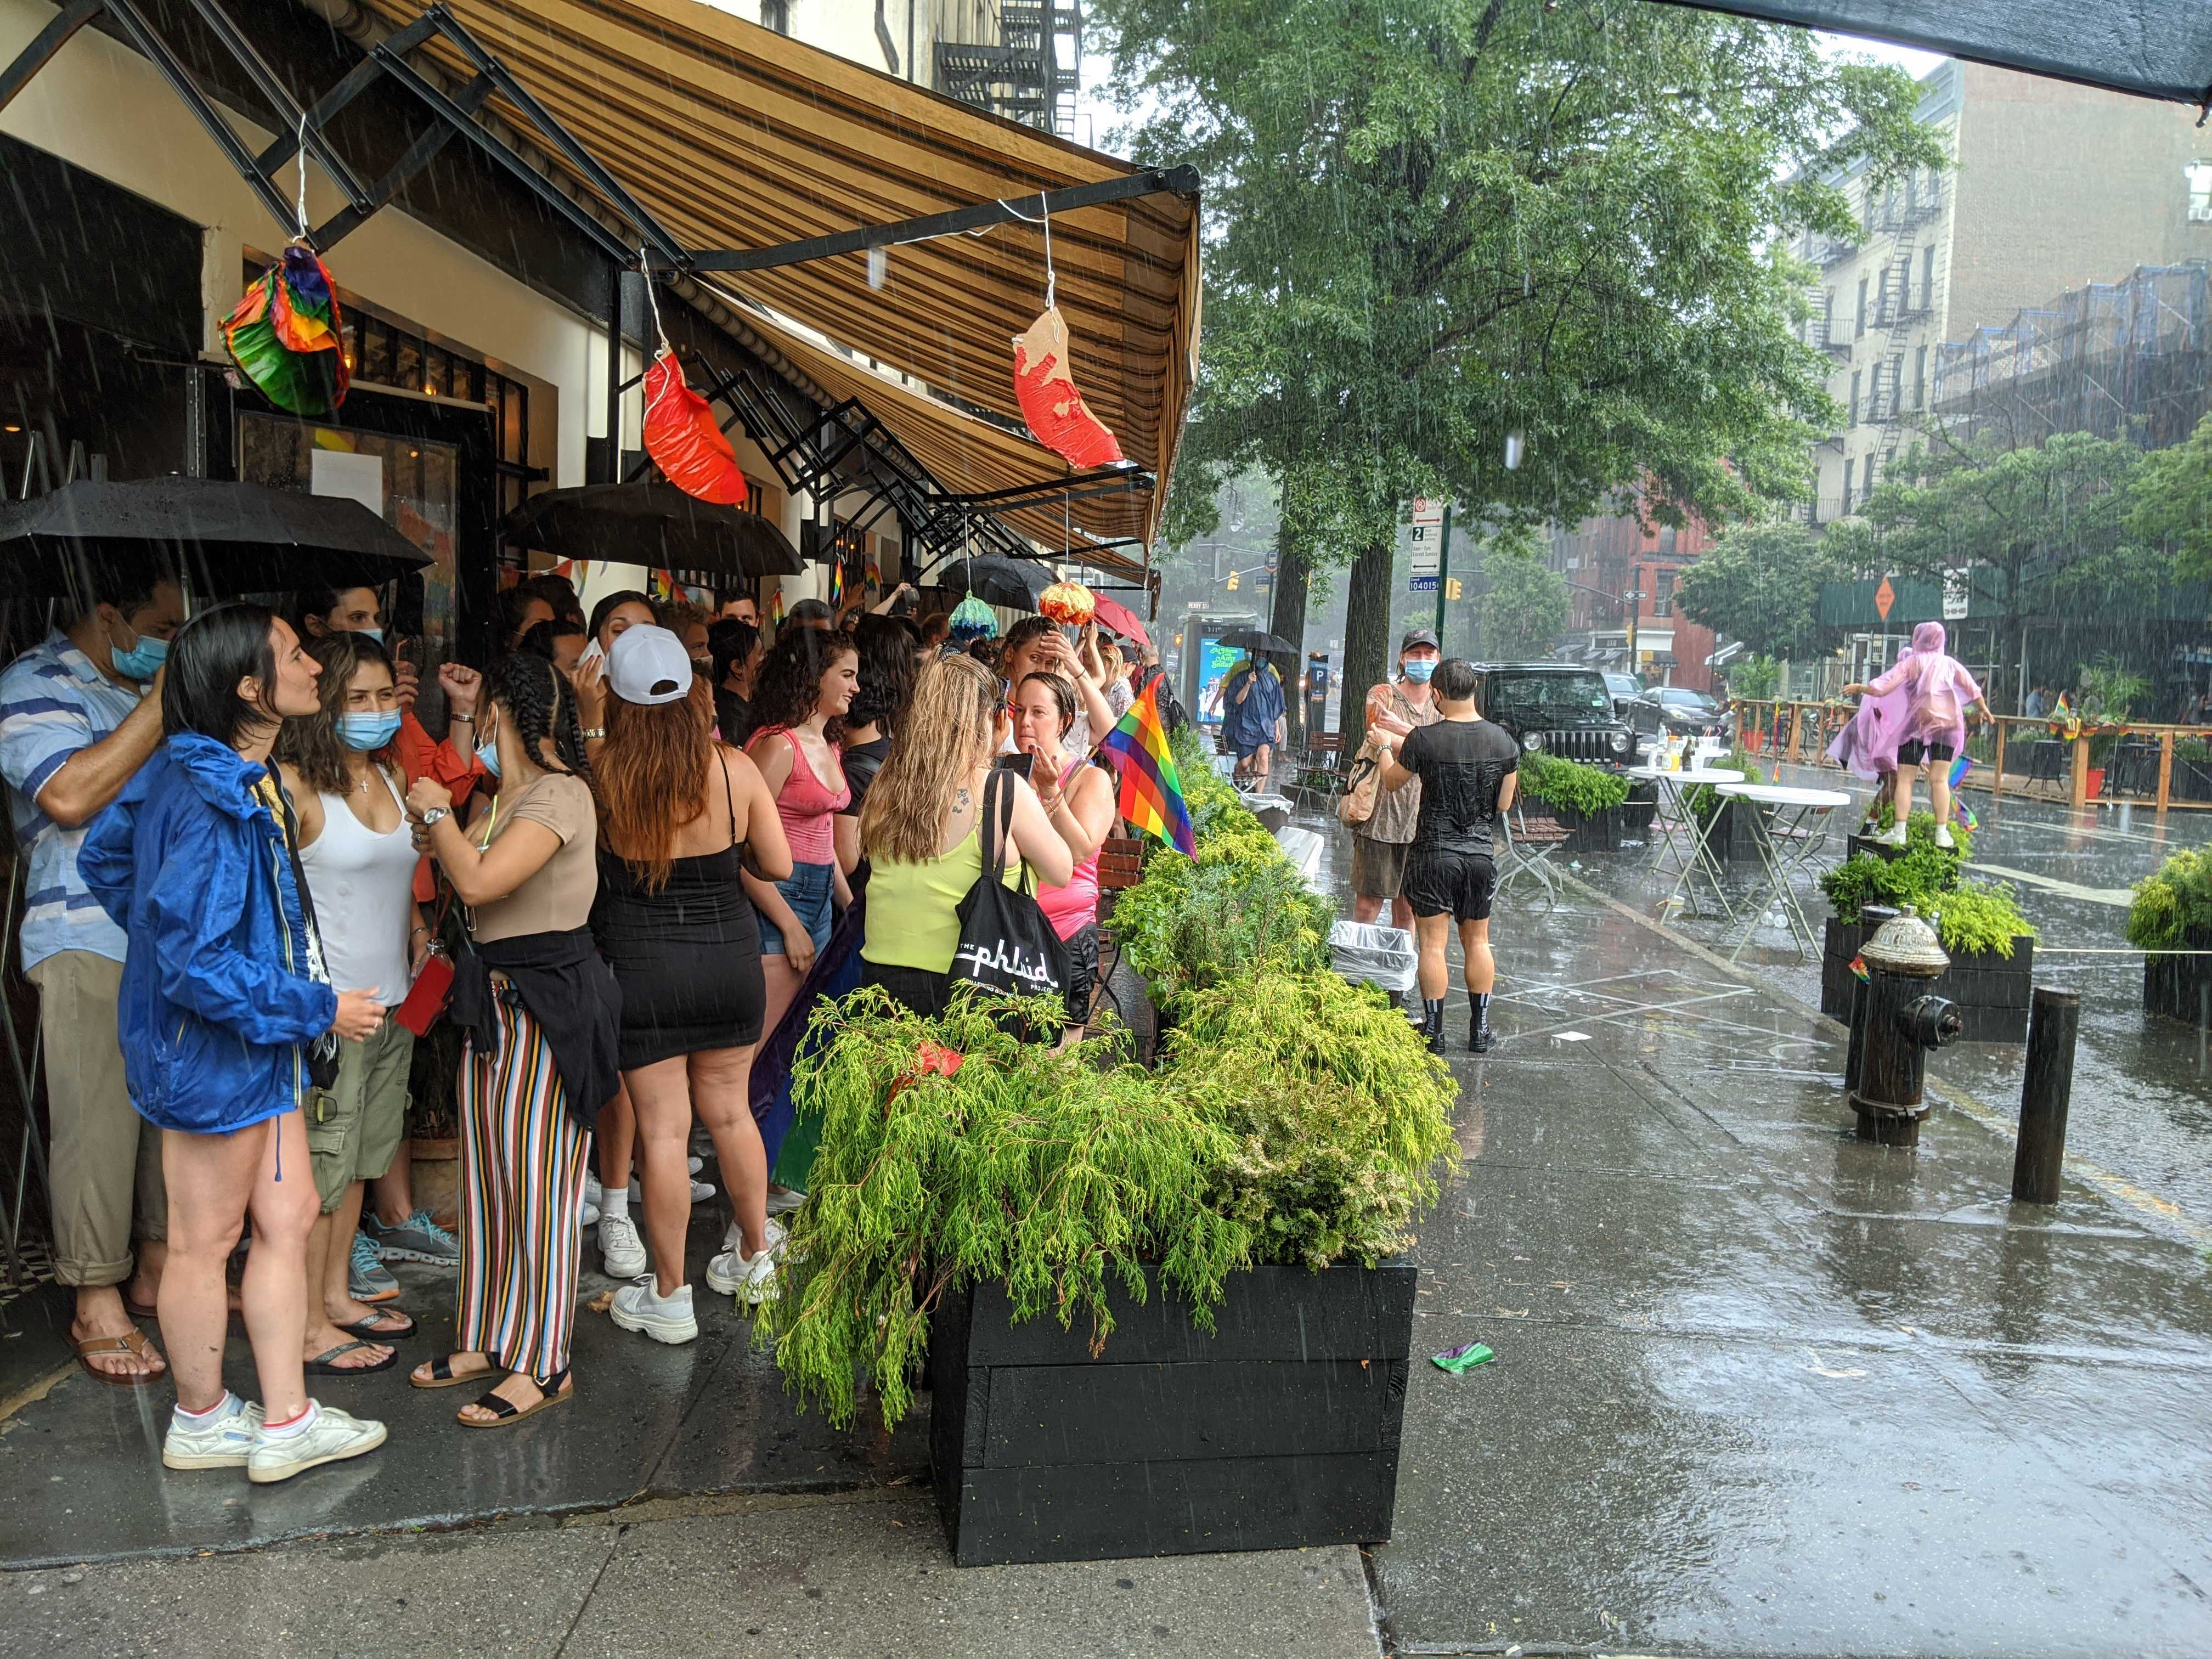 Patrons stand under an awning during a rain shower at Anton's